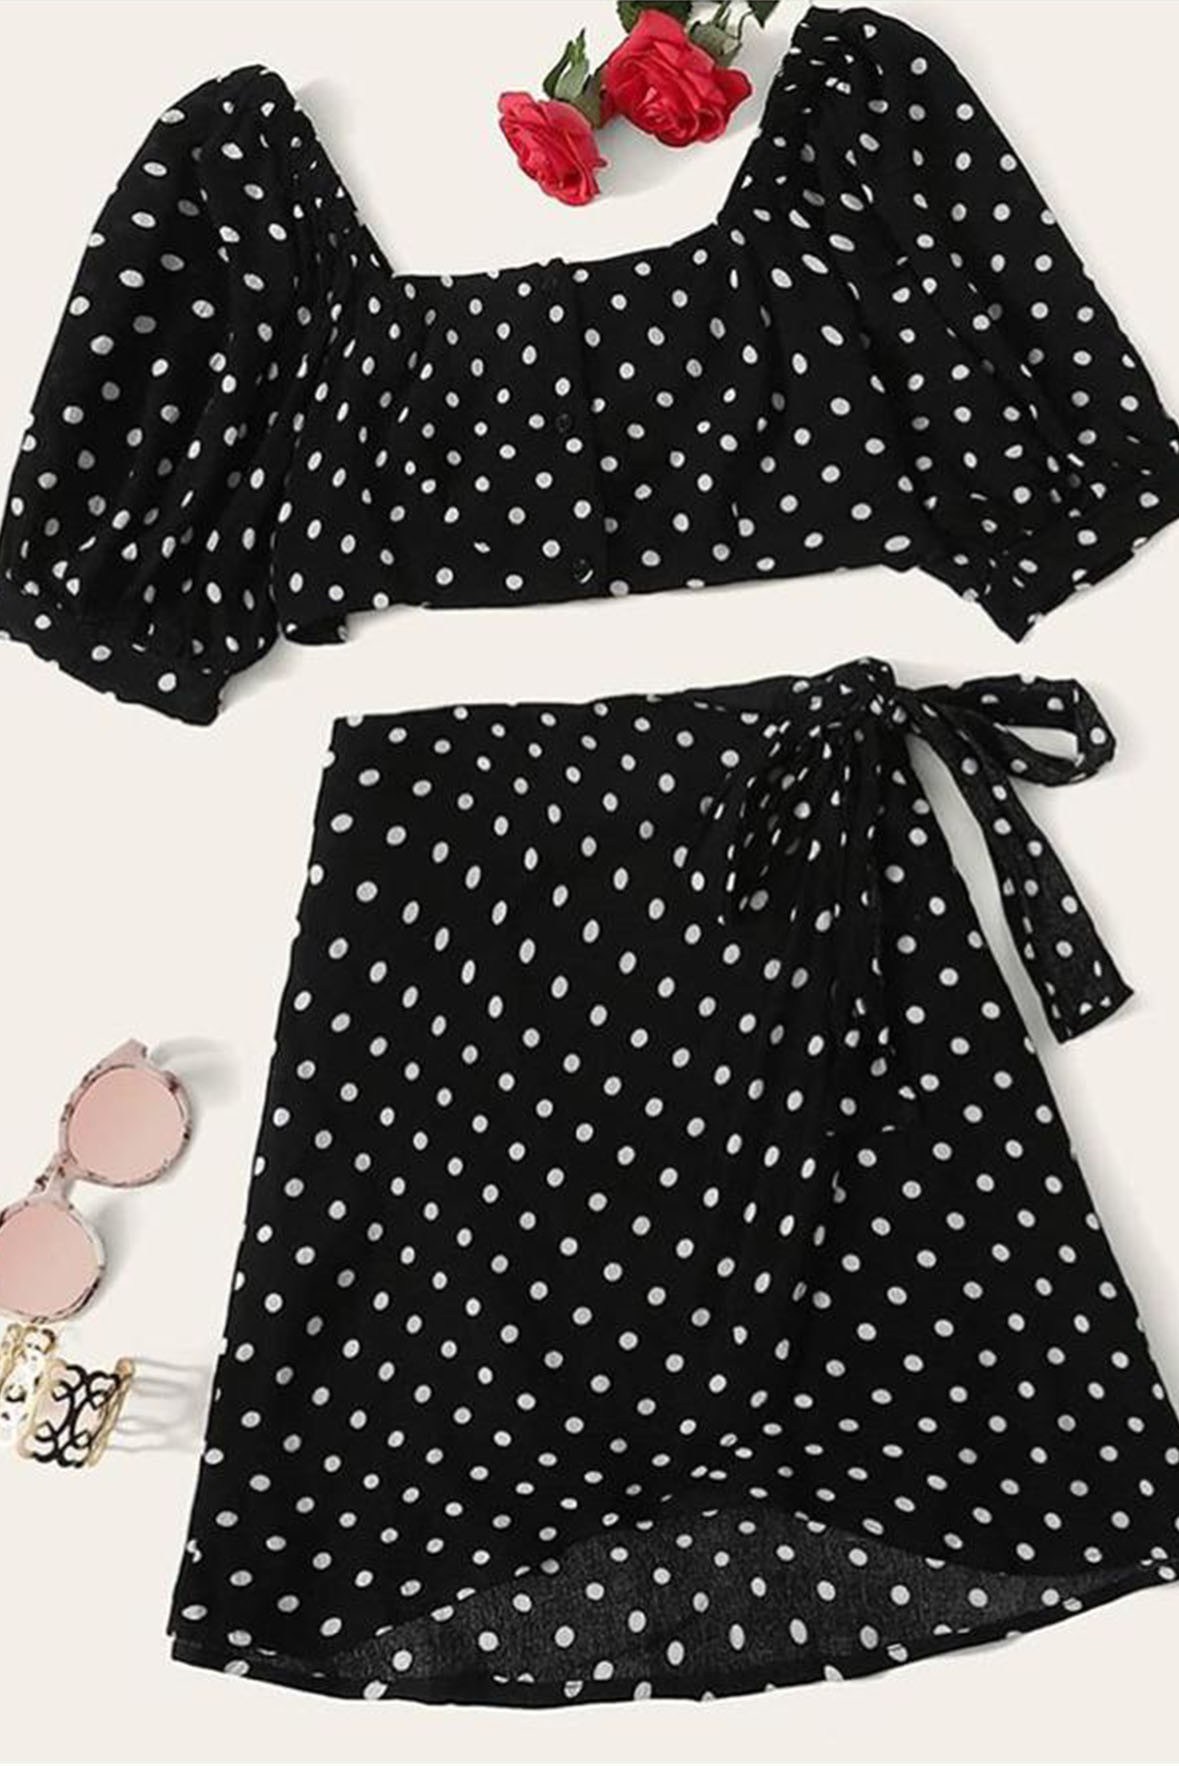 Set- Sweet as can be outfit